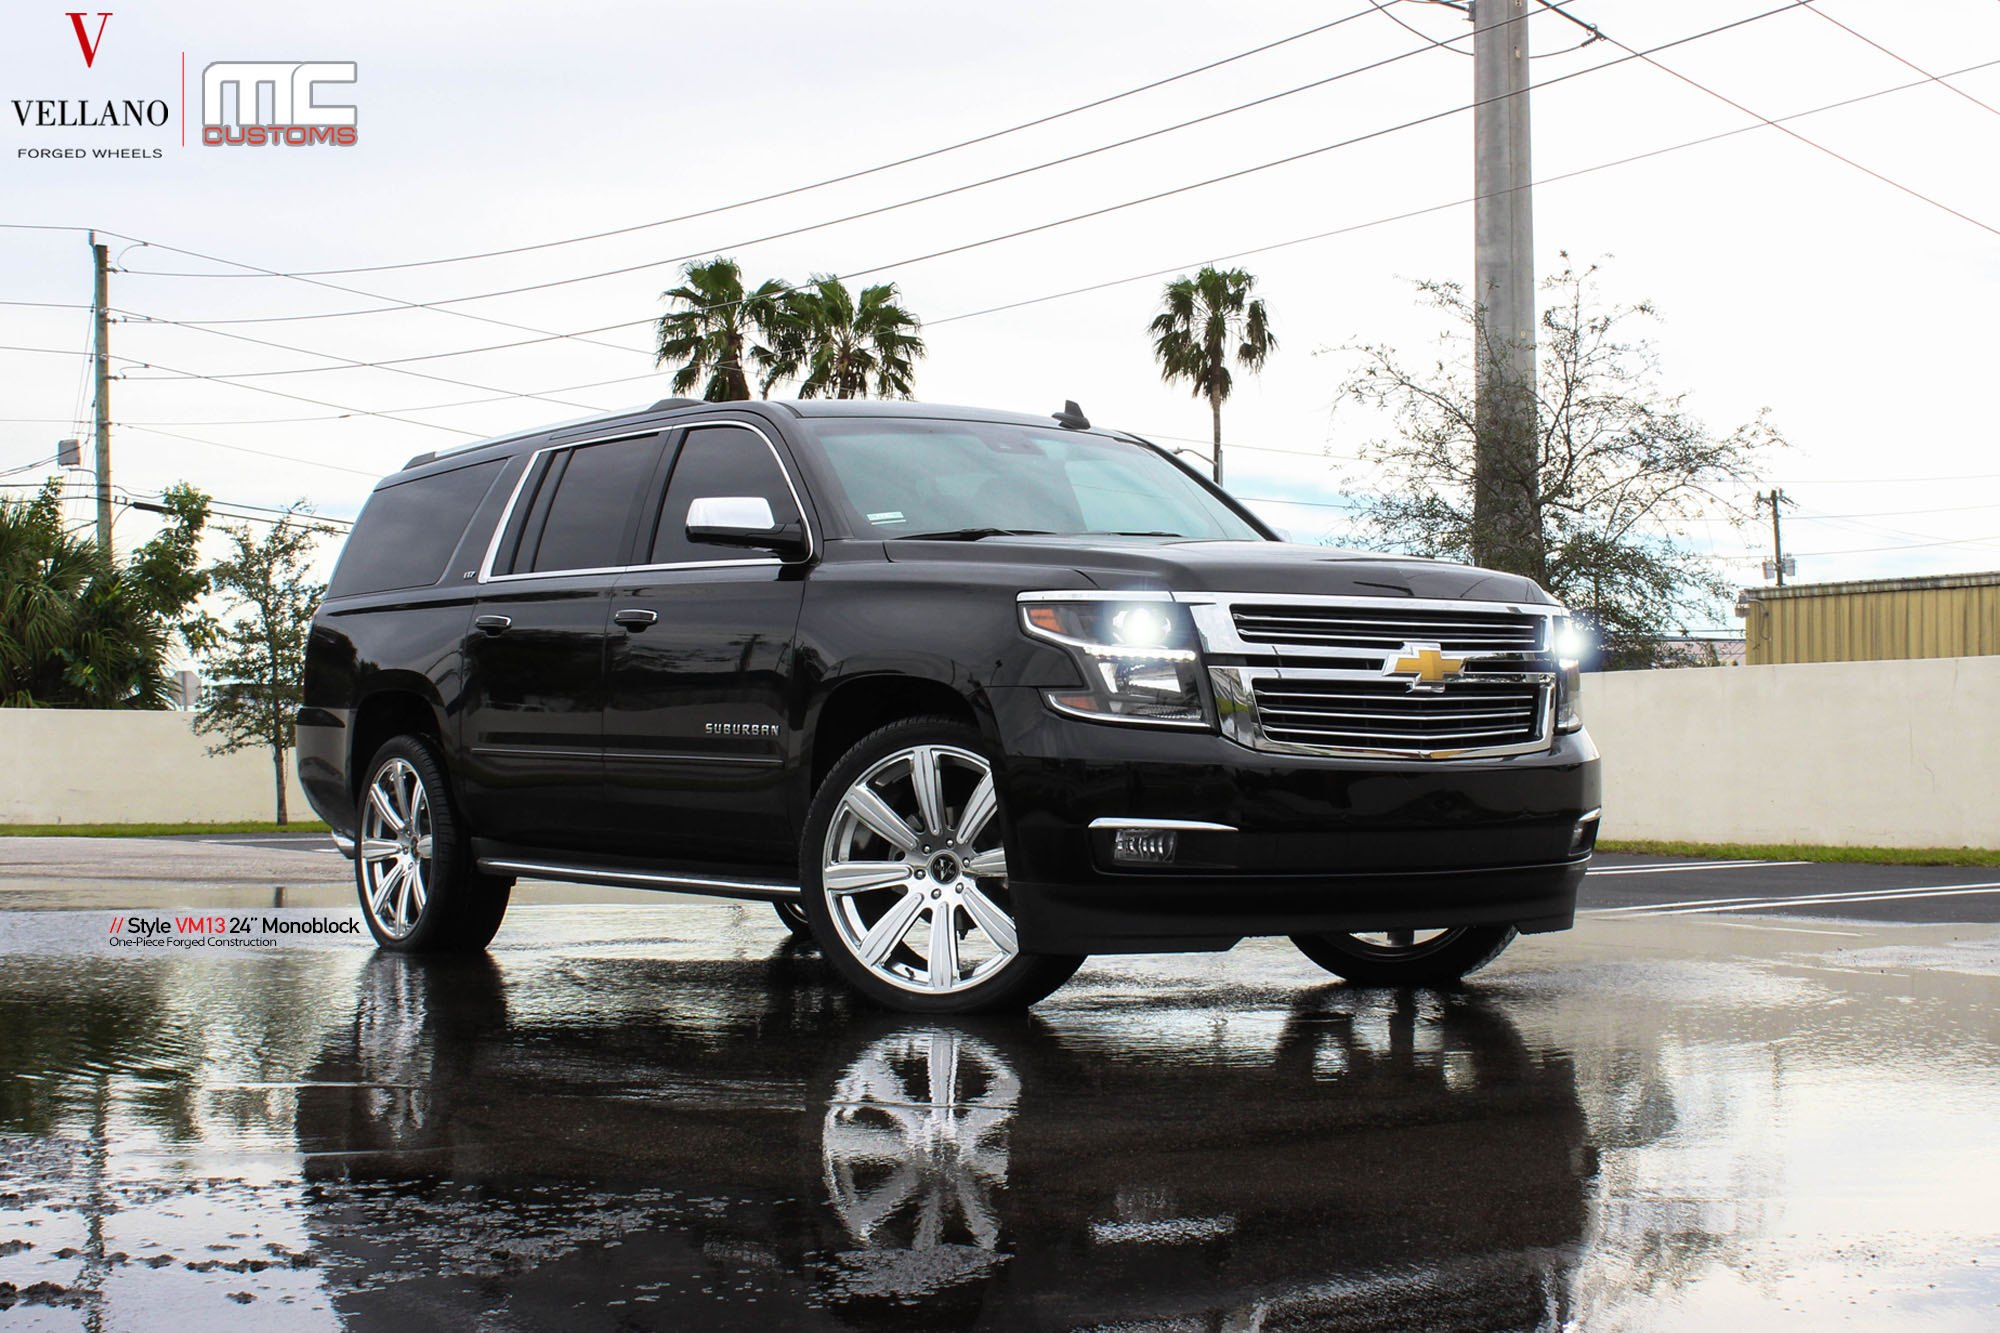 Custom 2016 Chevy Tahoe Images Mods Photos Upgrades